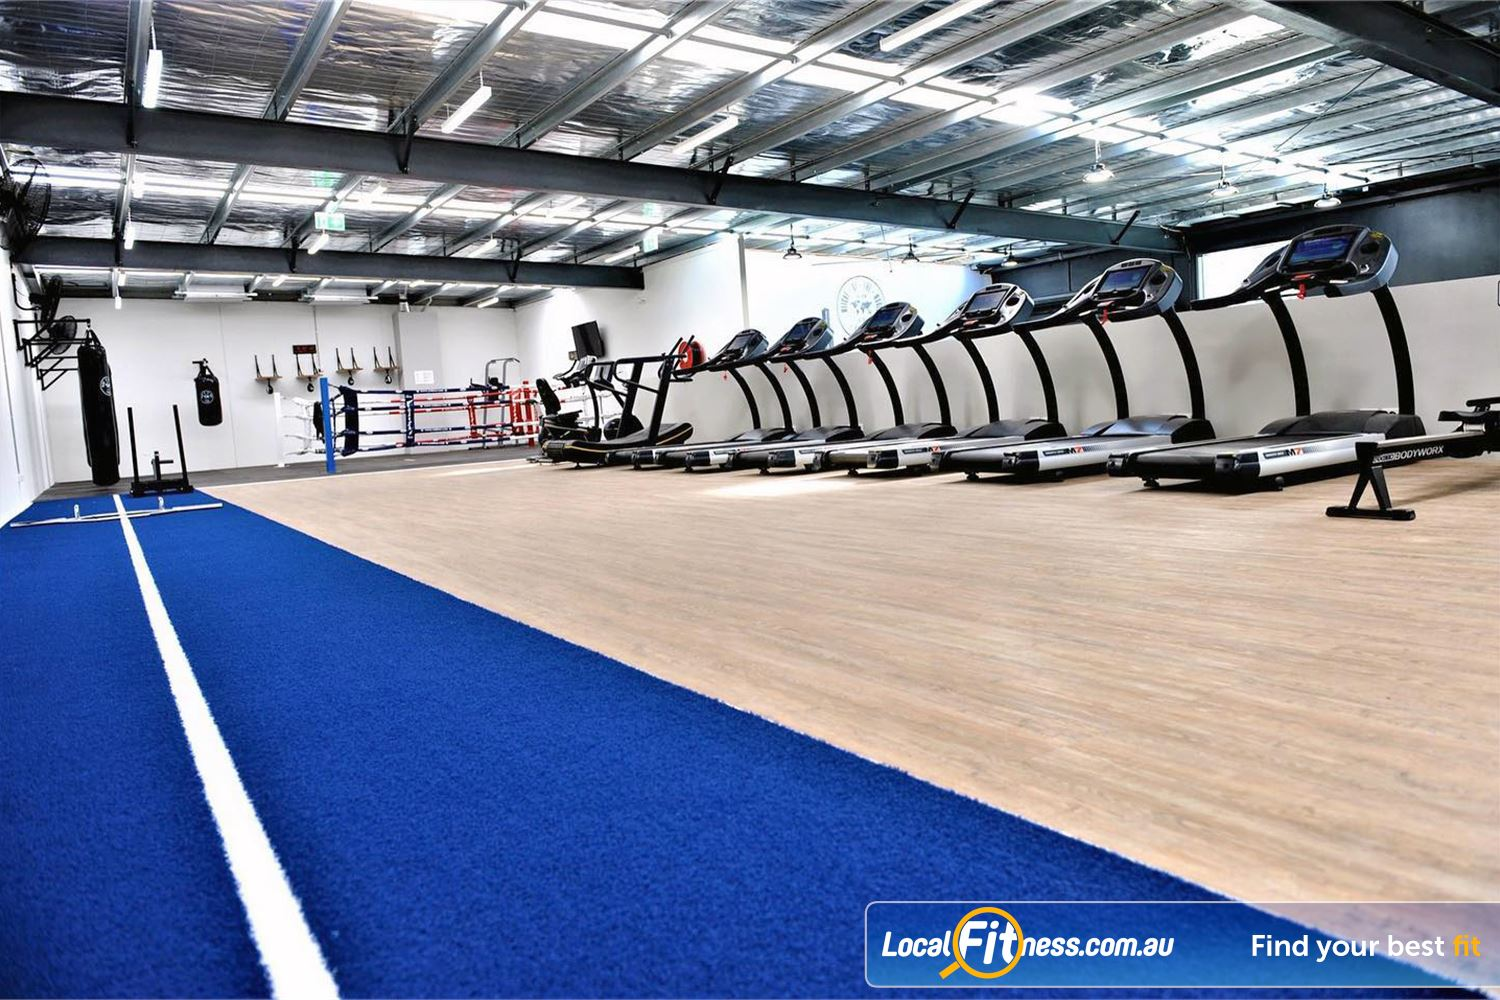 Weight of the World Fitness Altona North Functional training, boxing training, cardio training all under one roof.